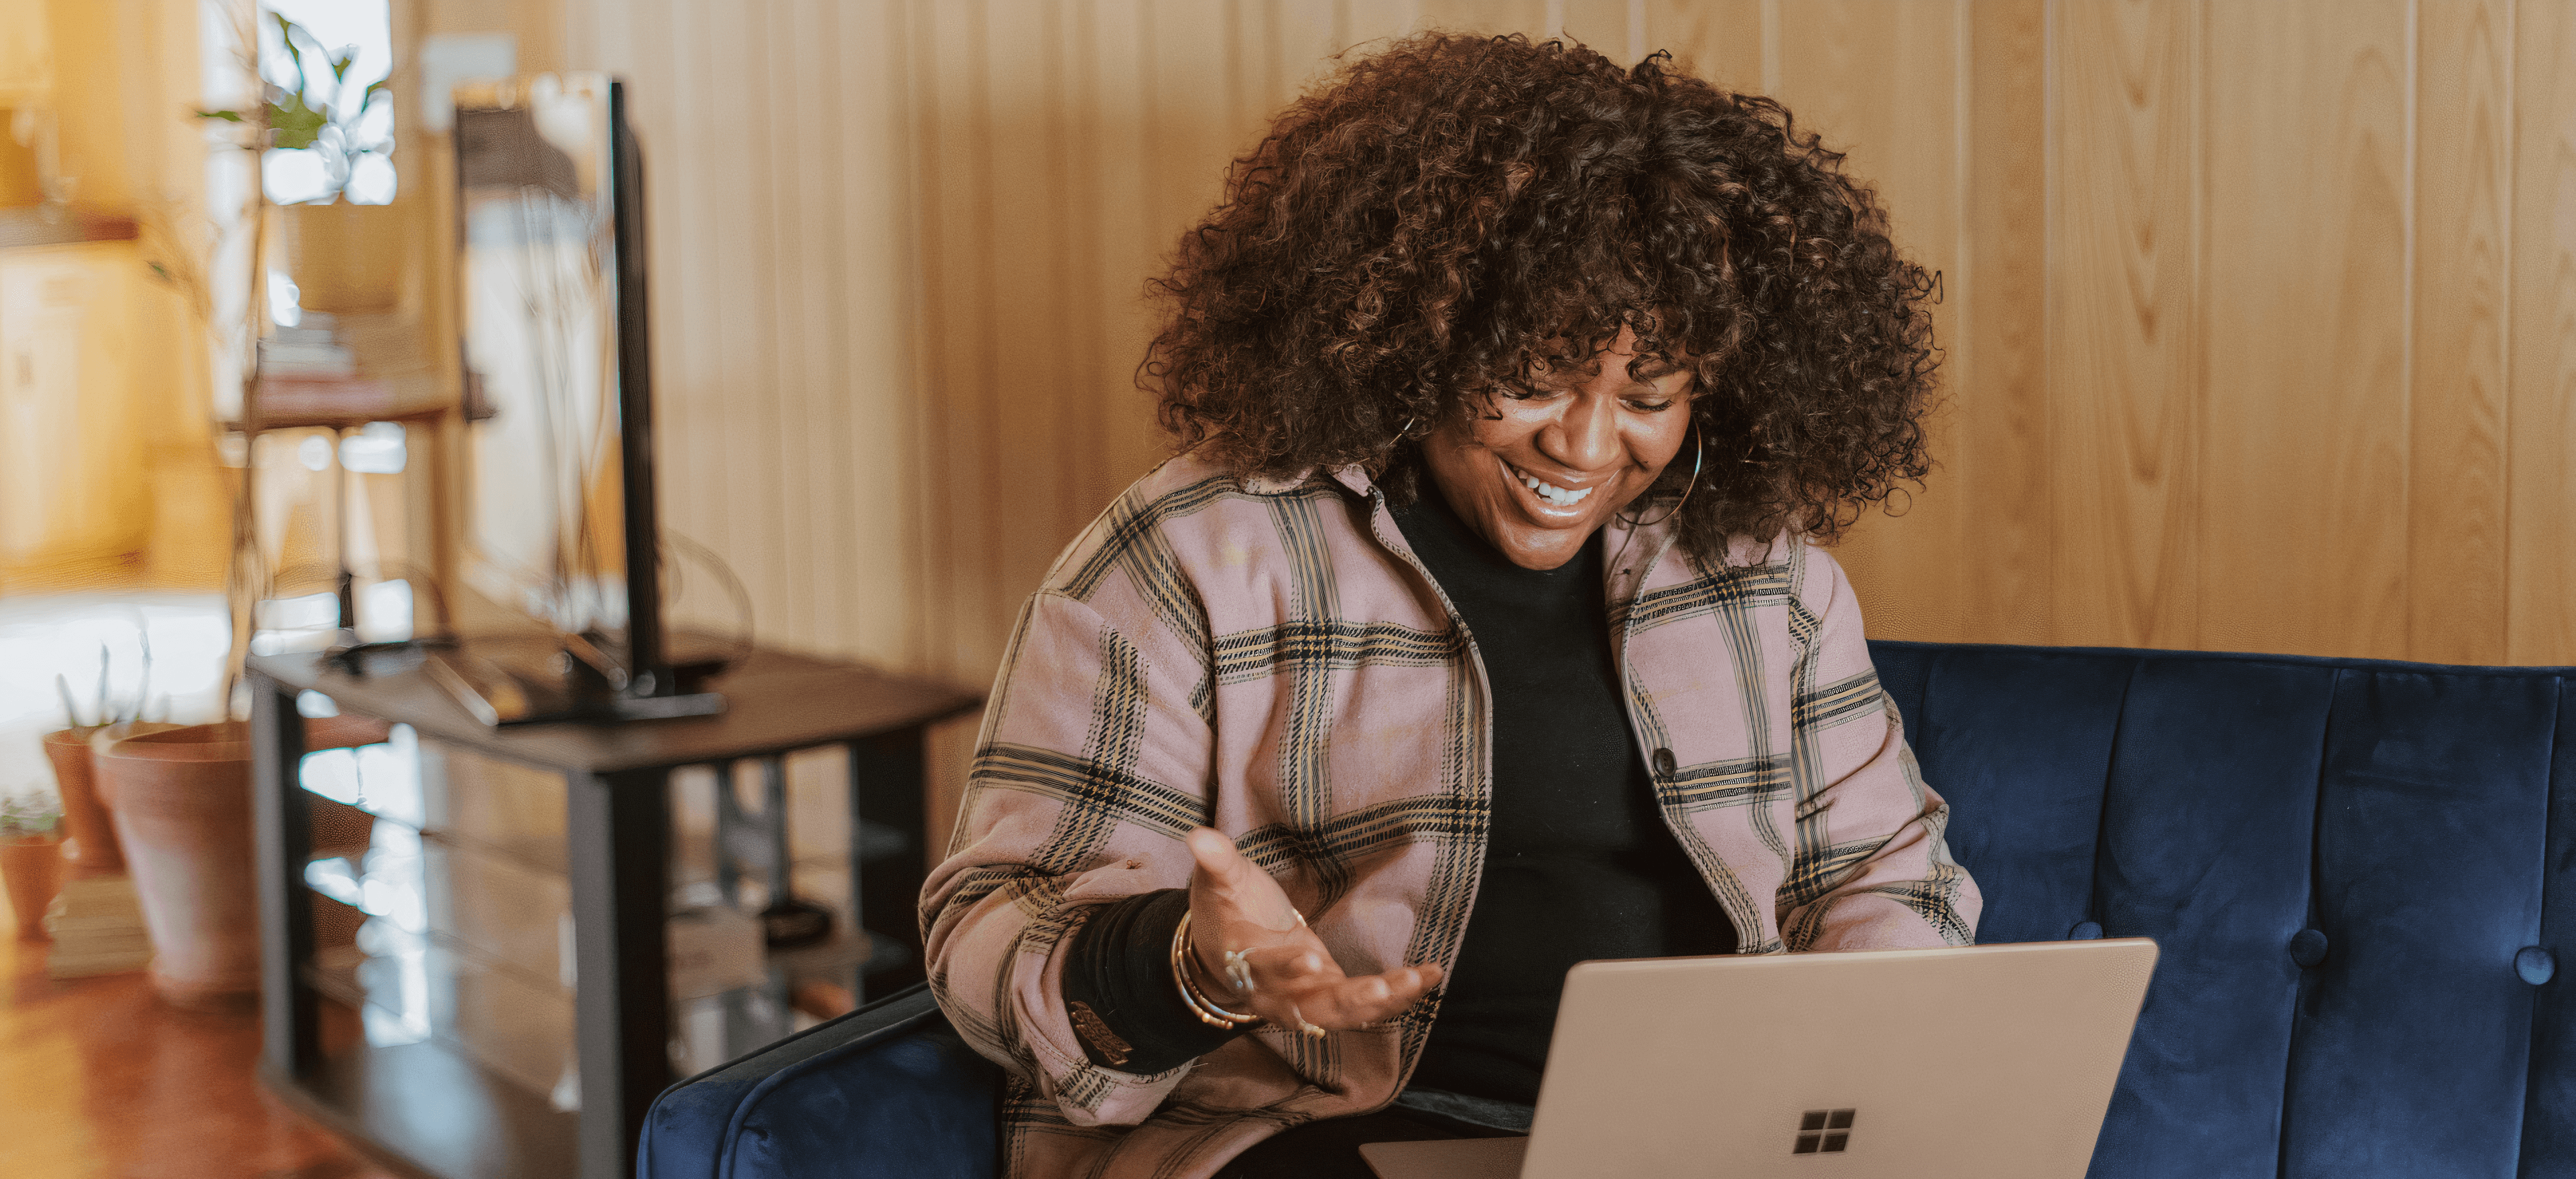 An image of a well dressed woman who appears to be explaining something to a client over a video call on her laptop